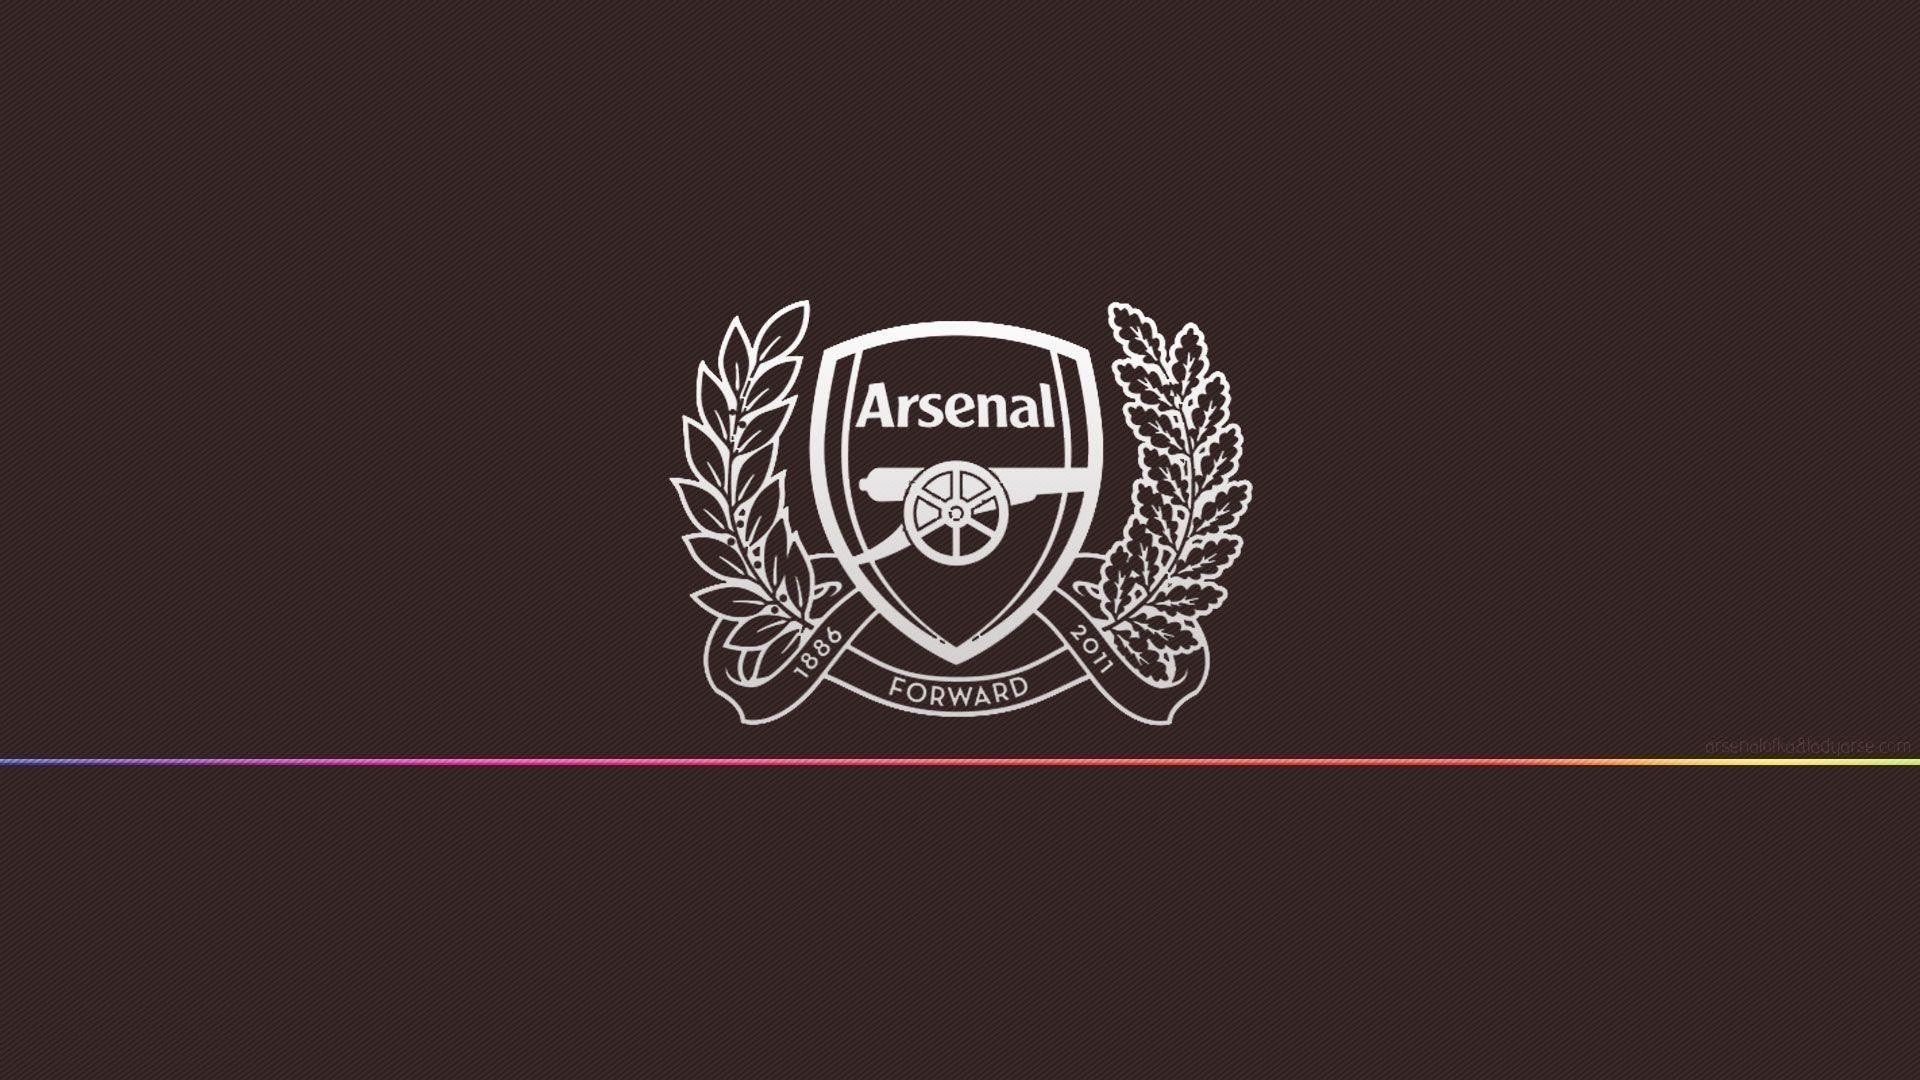 Wallpapers Arsenal is the best highresolution football